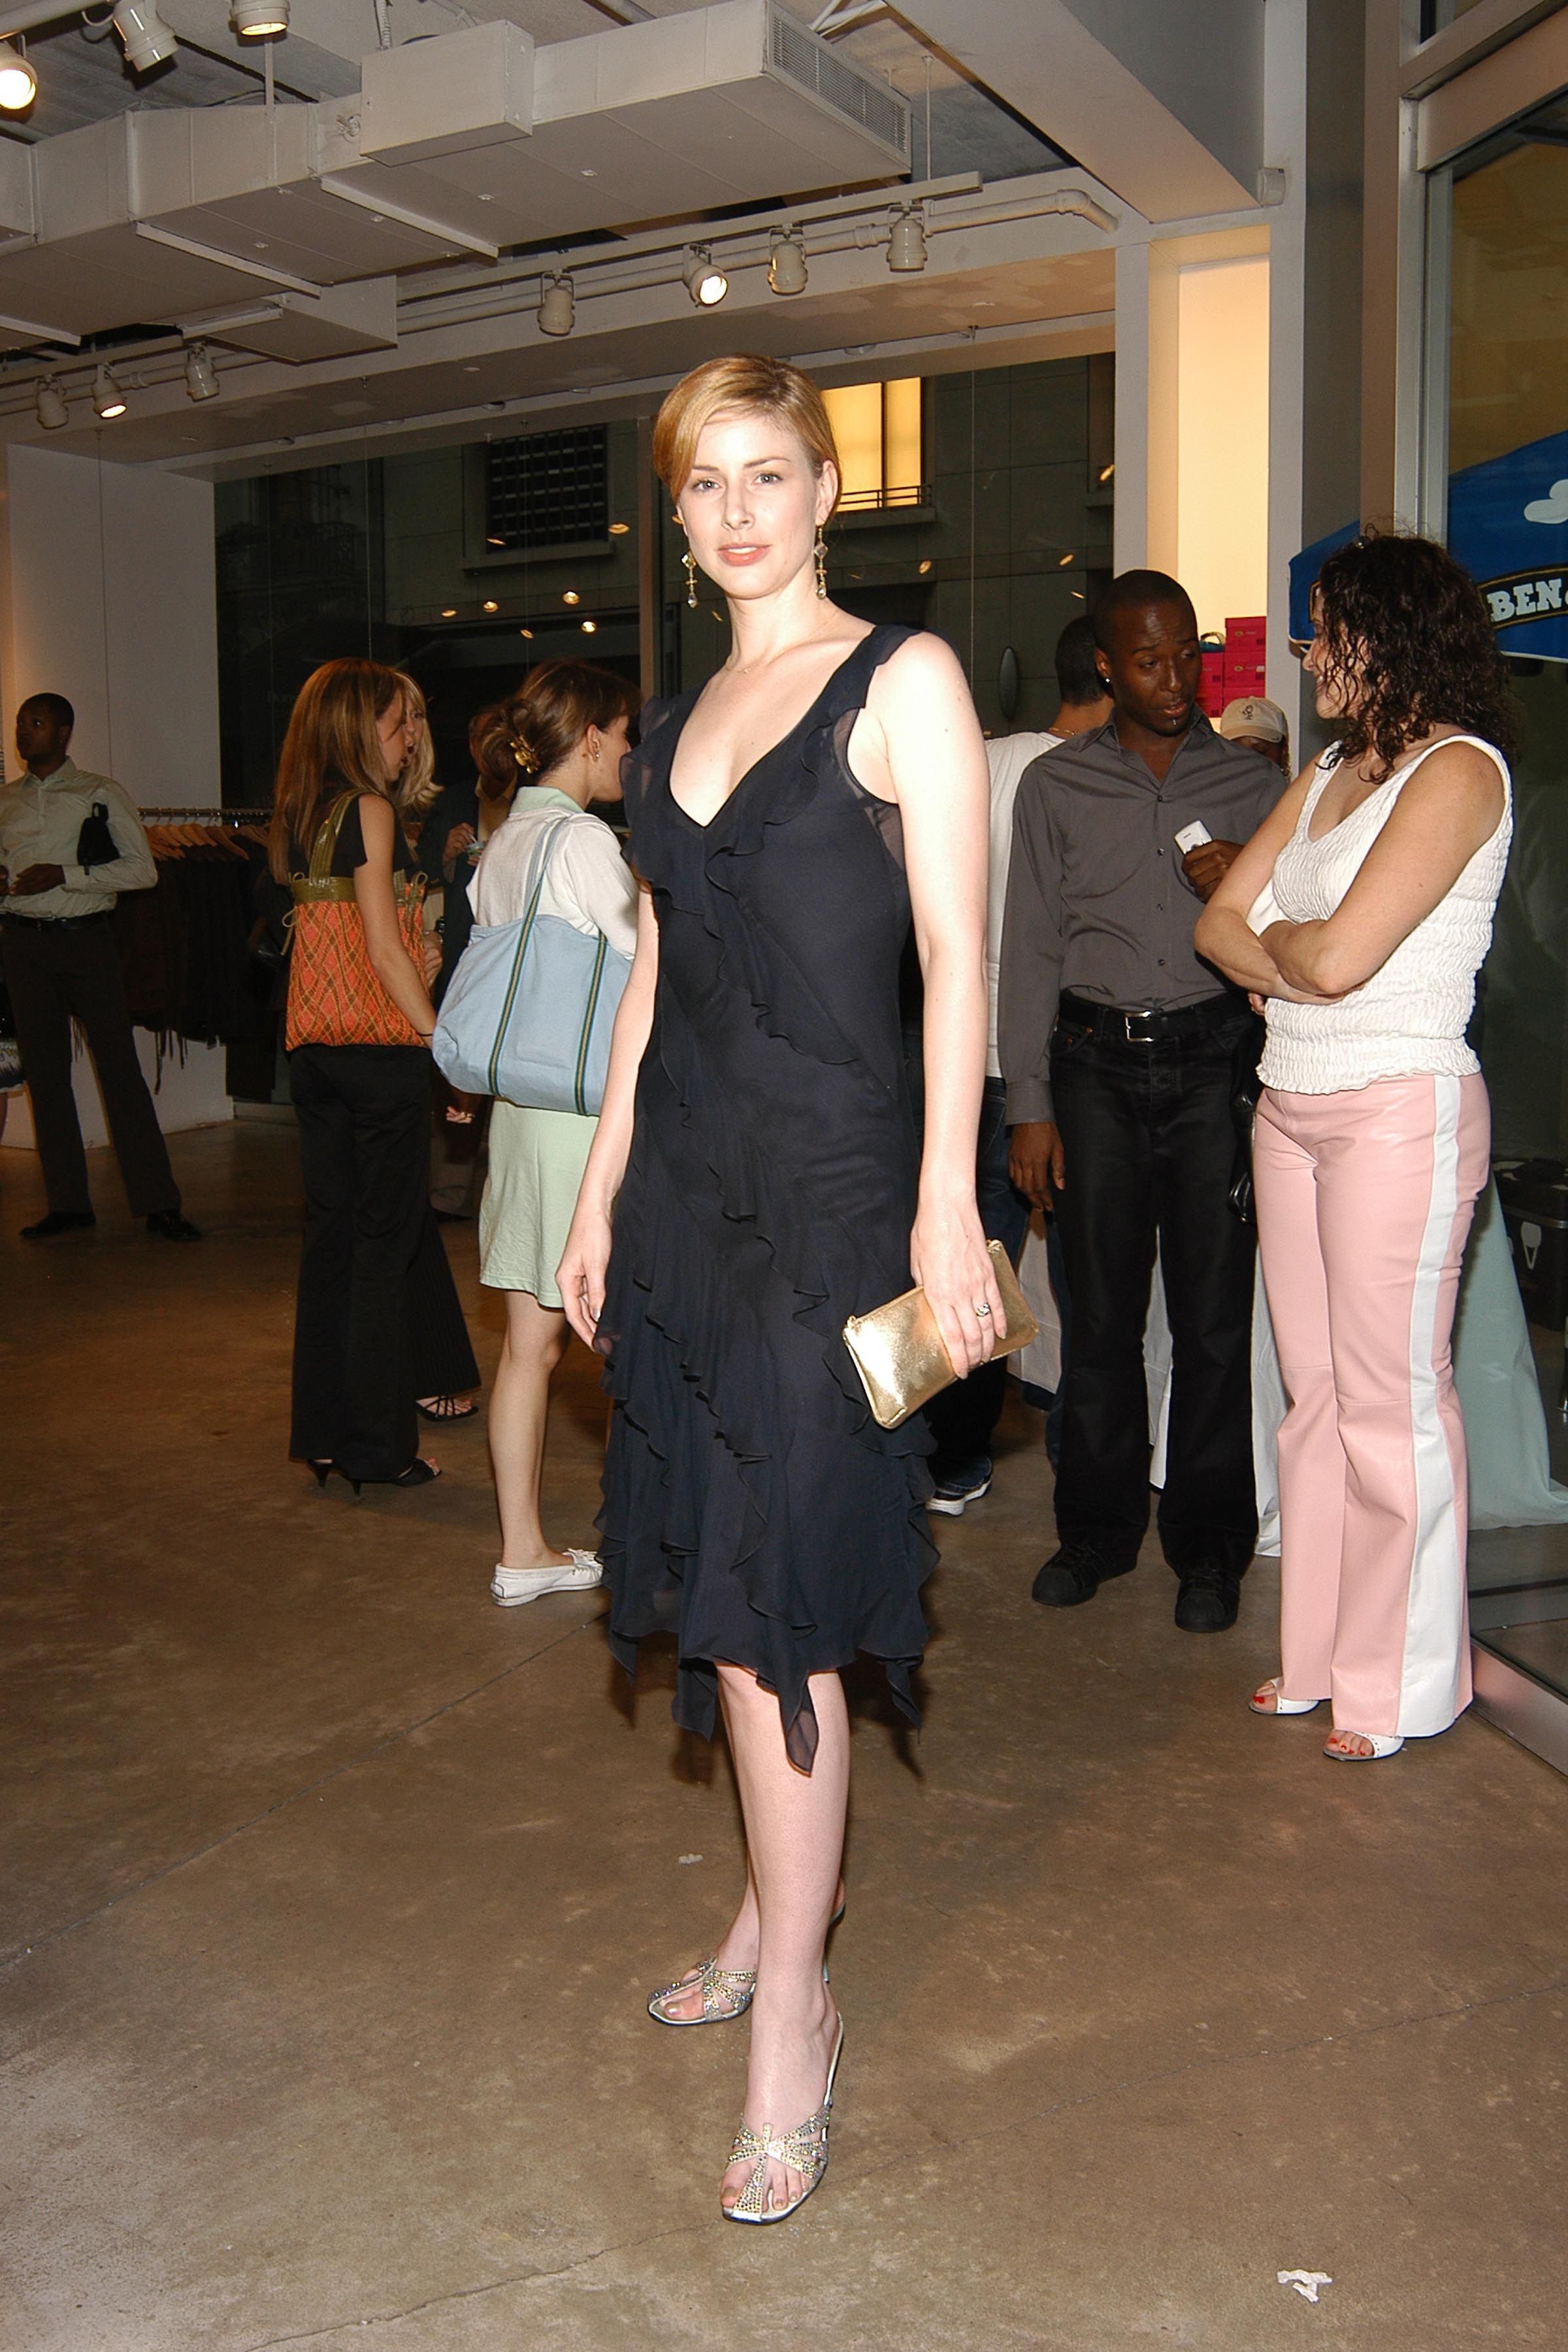 Diane neal s legs picture 571